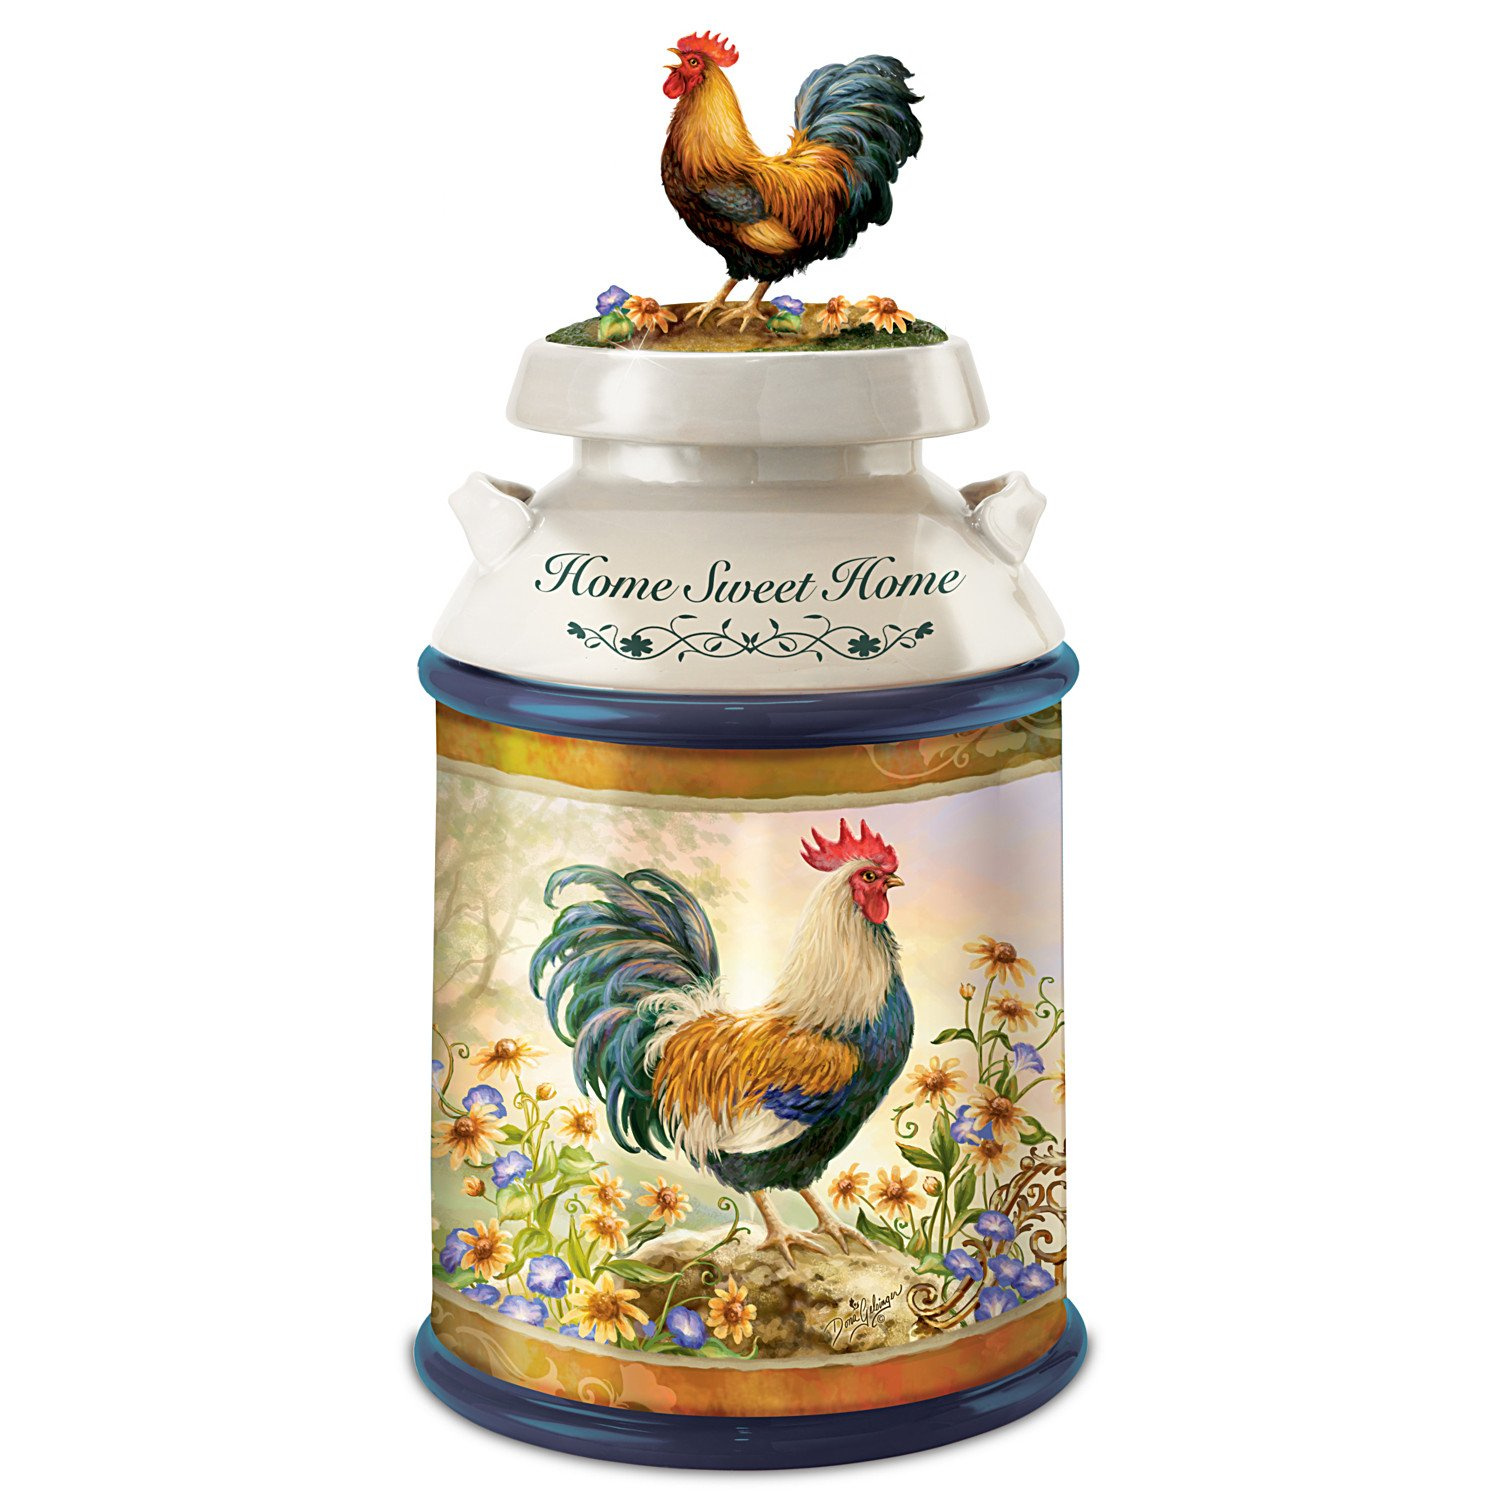 Dona Gelsinger Country Rooster Art Cookie Jar With Free Cookie Cutter And Recipe by The Bradford Exchange